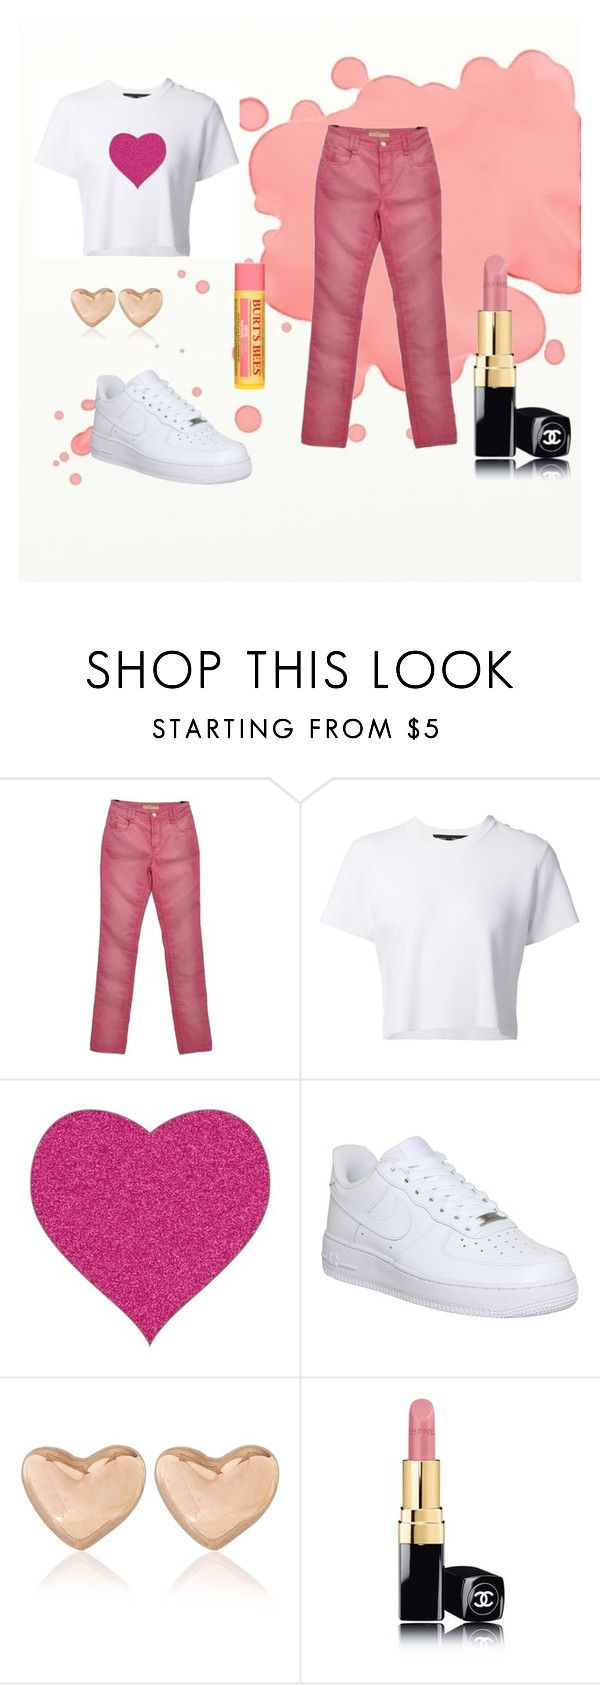 Casual pink heart outfit by little-bit-994 on Polyvore featuring Proenza Schouler, John Galliano, NIKE, Dinny Hall, Chanel and Burt's Bees